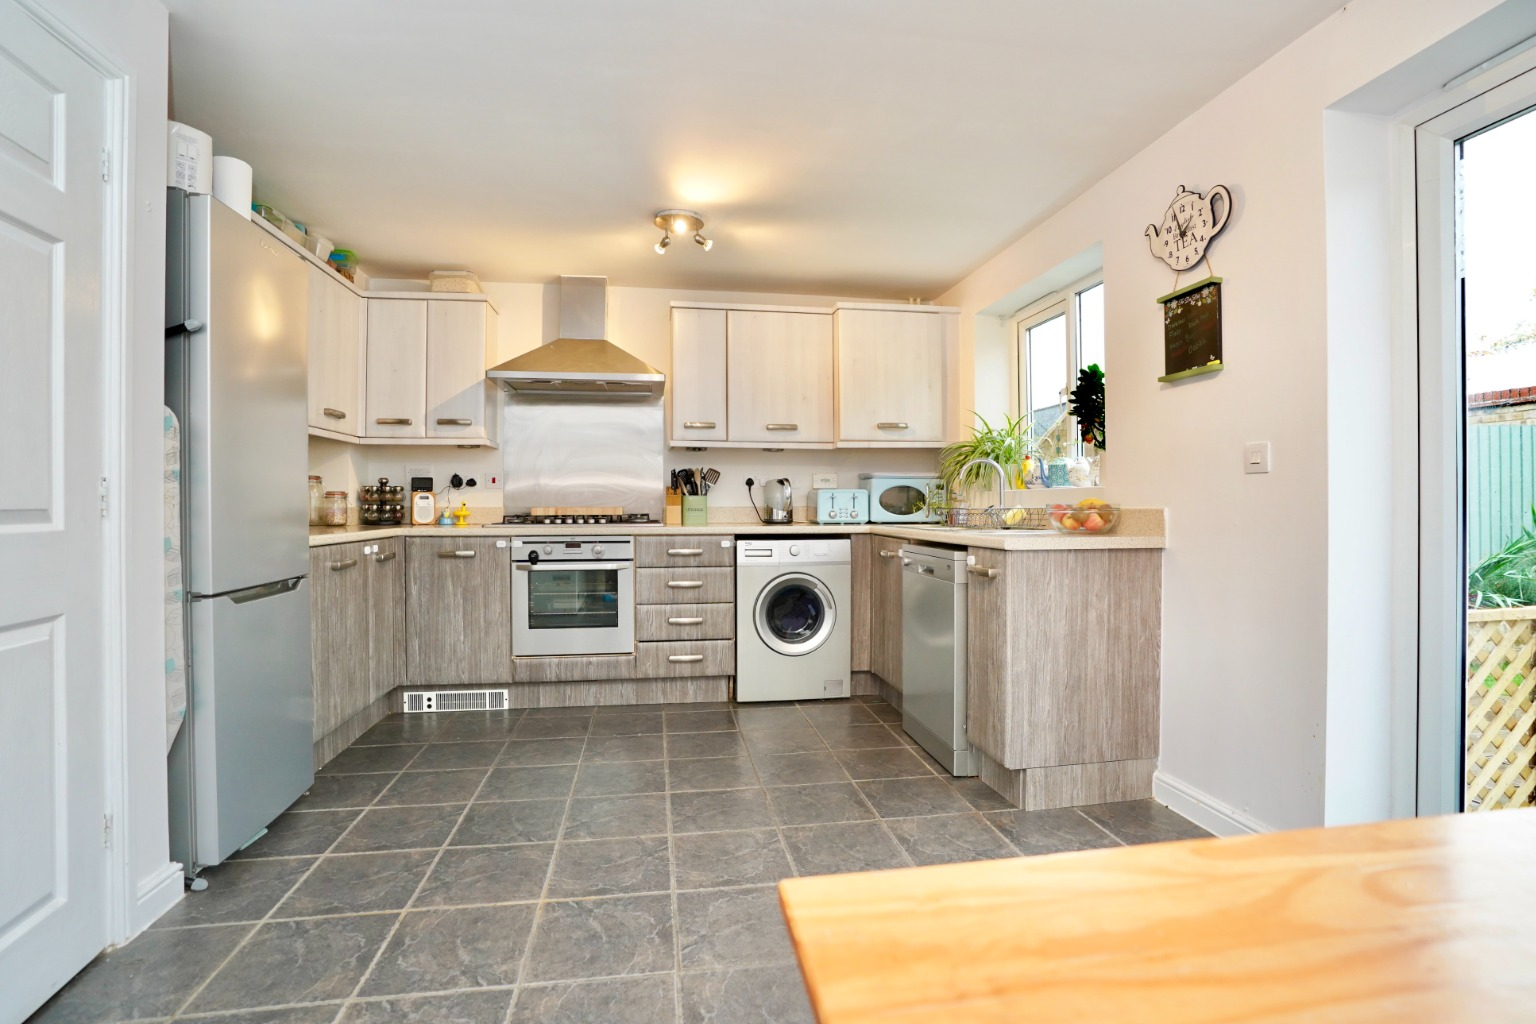 3 bed end of terrace house for sale in Stone Hill, Cambridgeshire 2